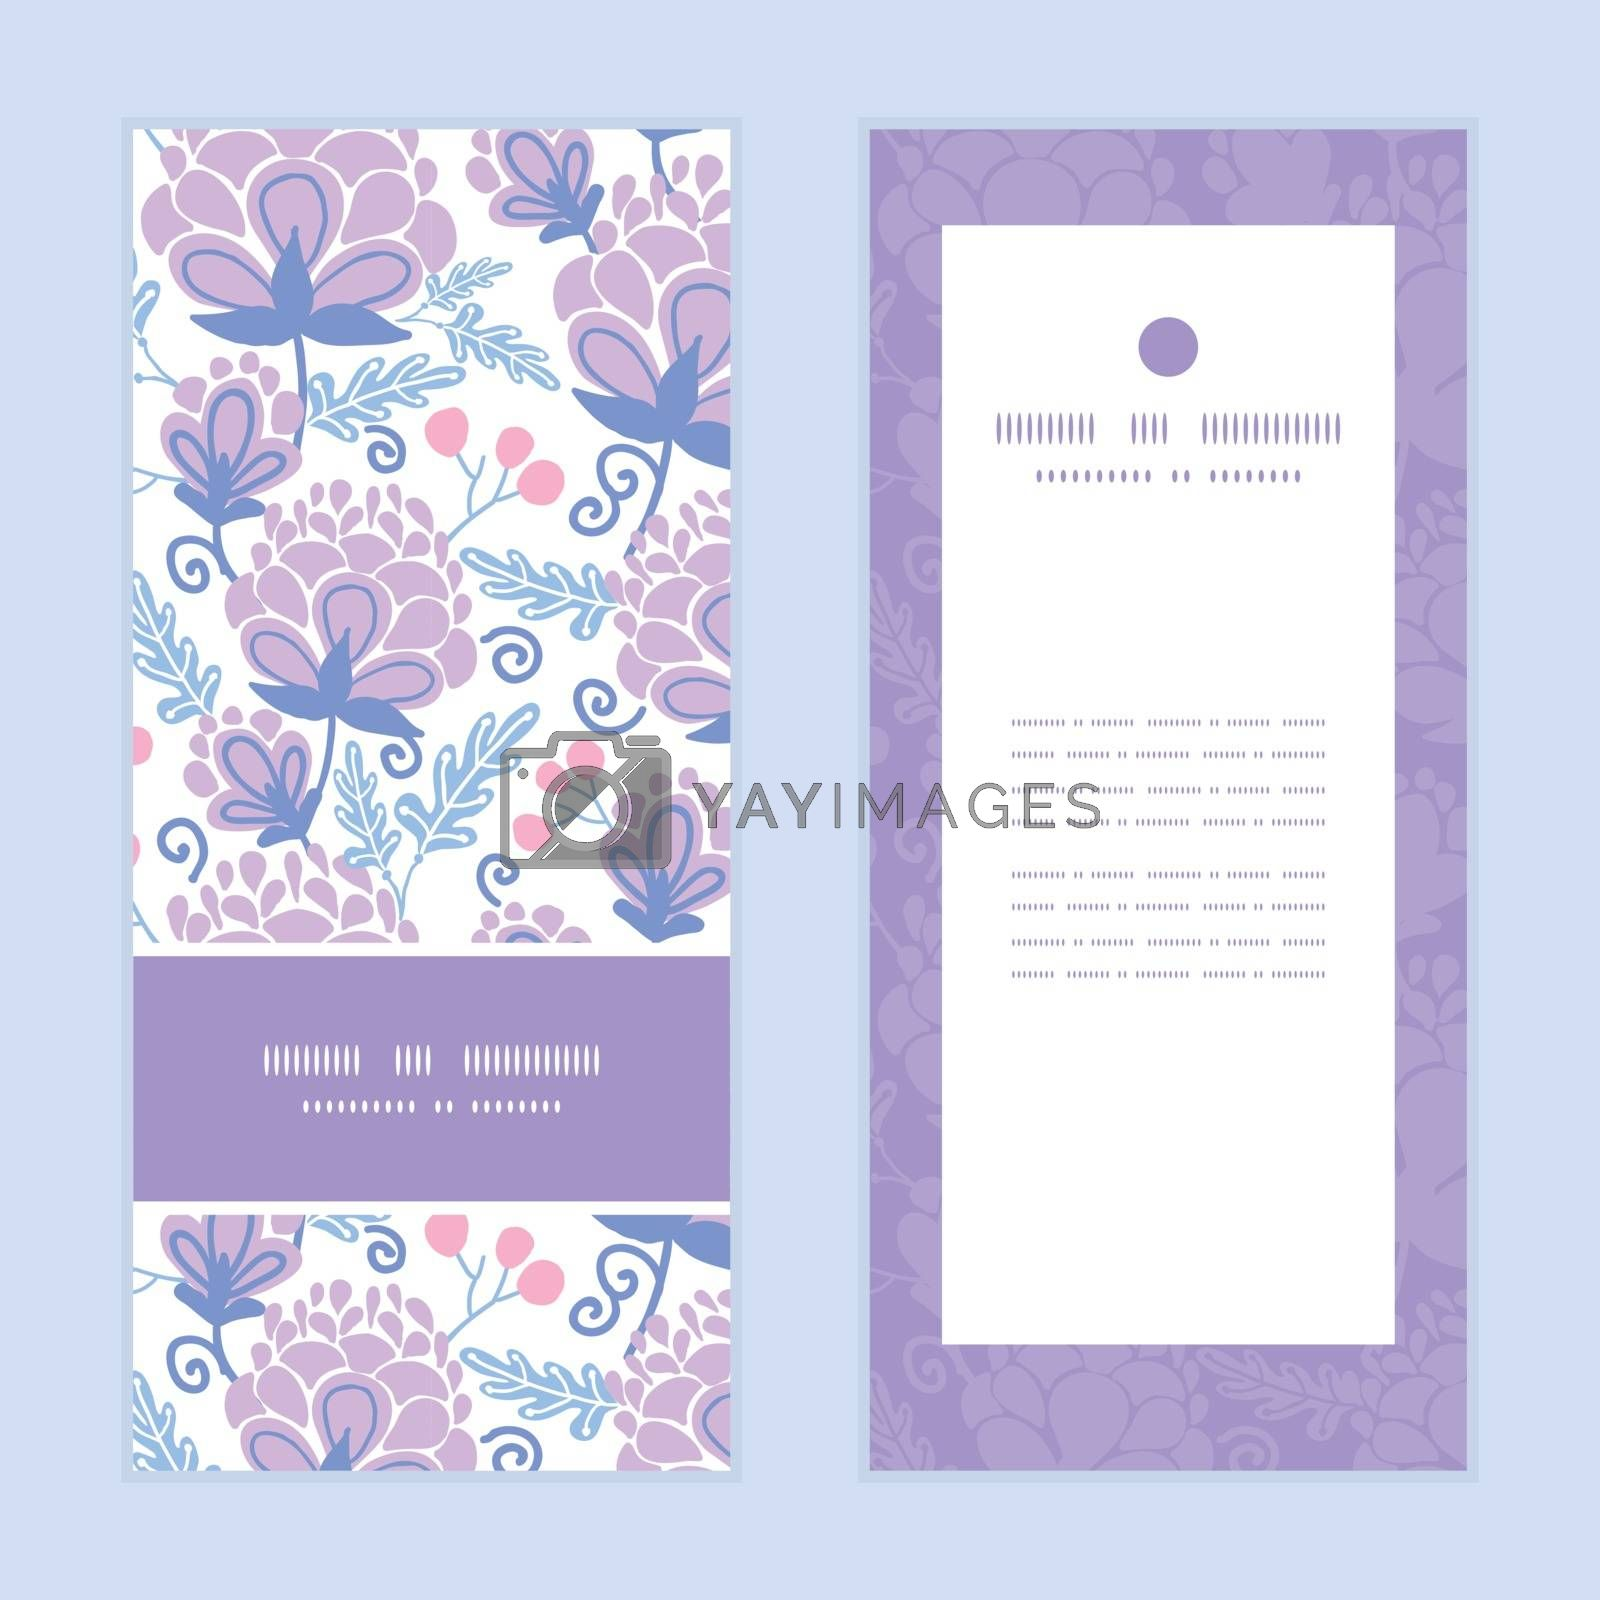 Royalty free image of Vector soft purple flowers vertical frame pattern invitation greeting cards set by Oksancia